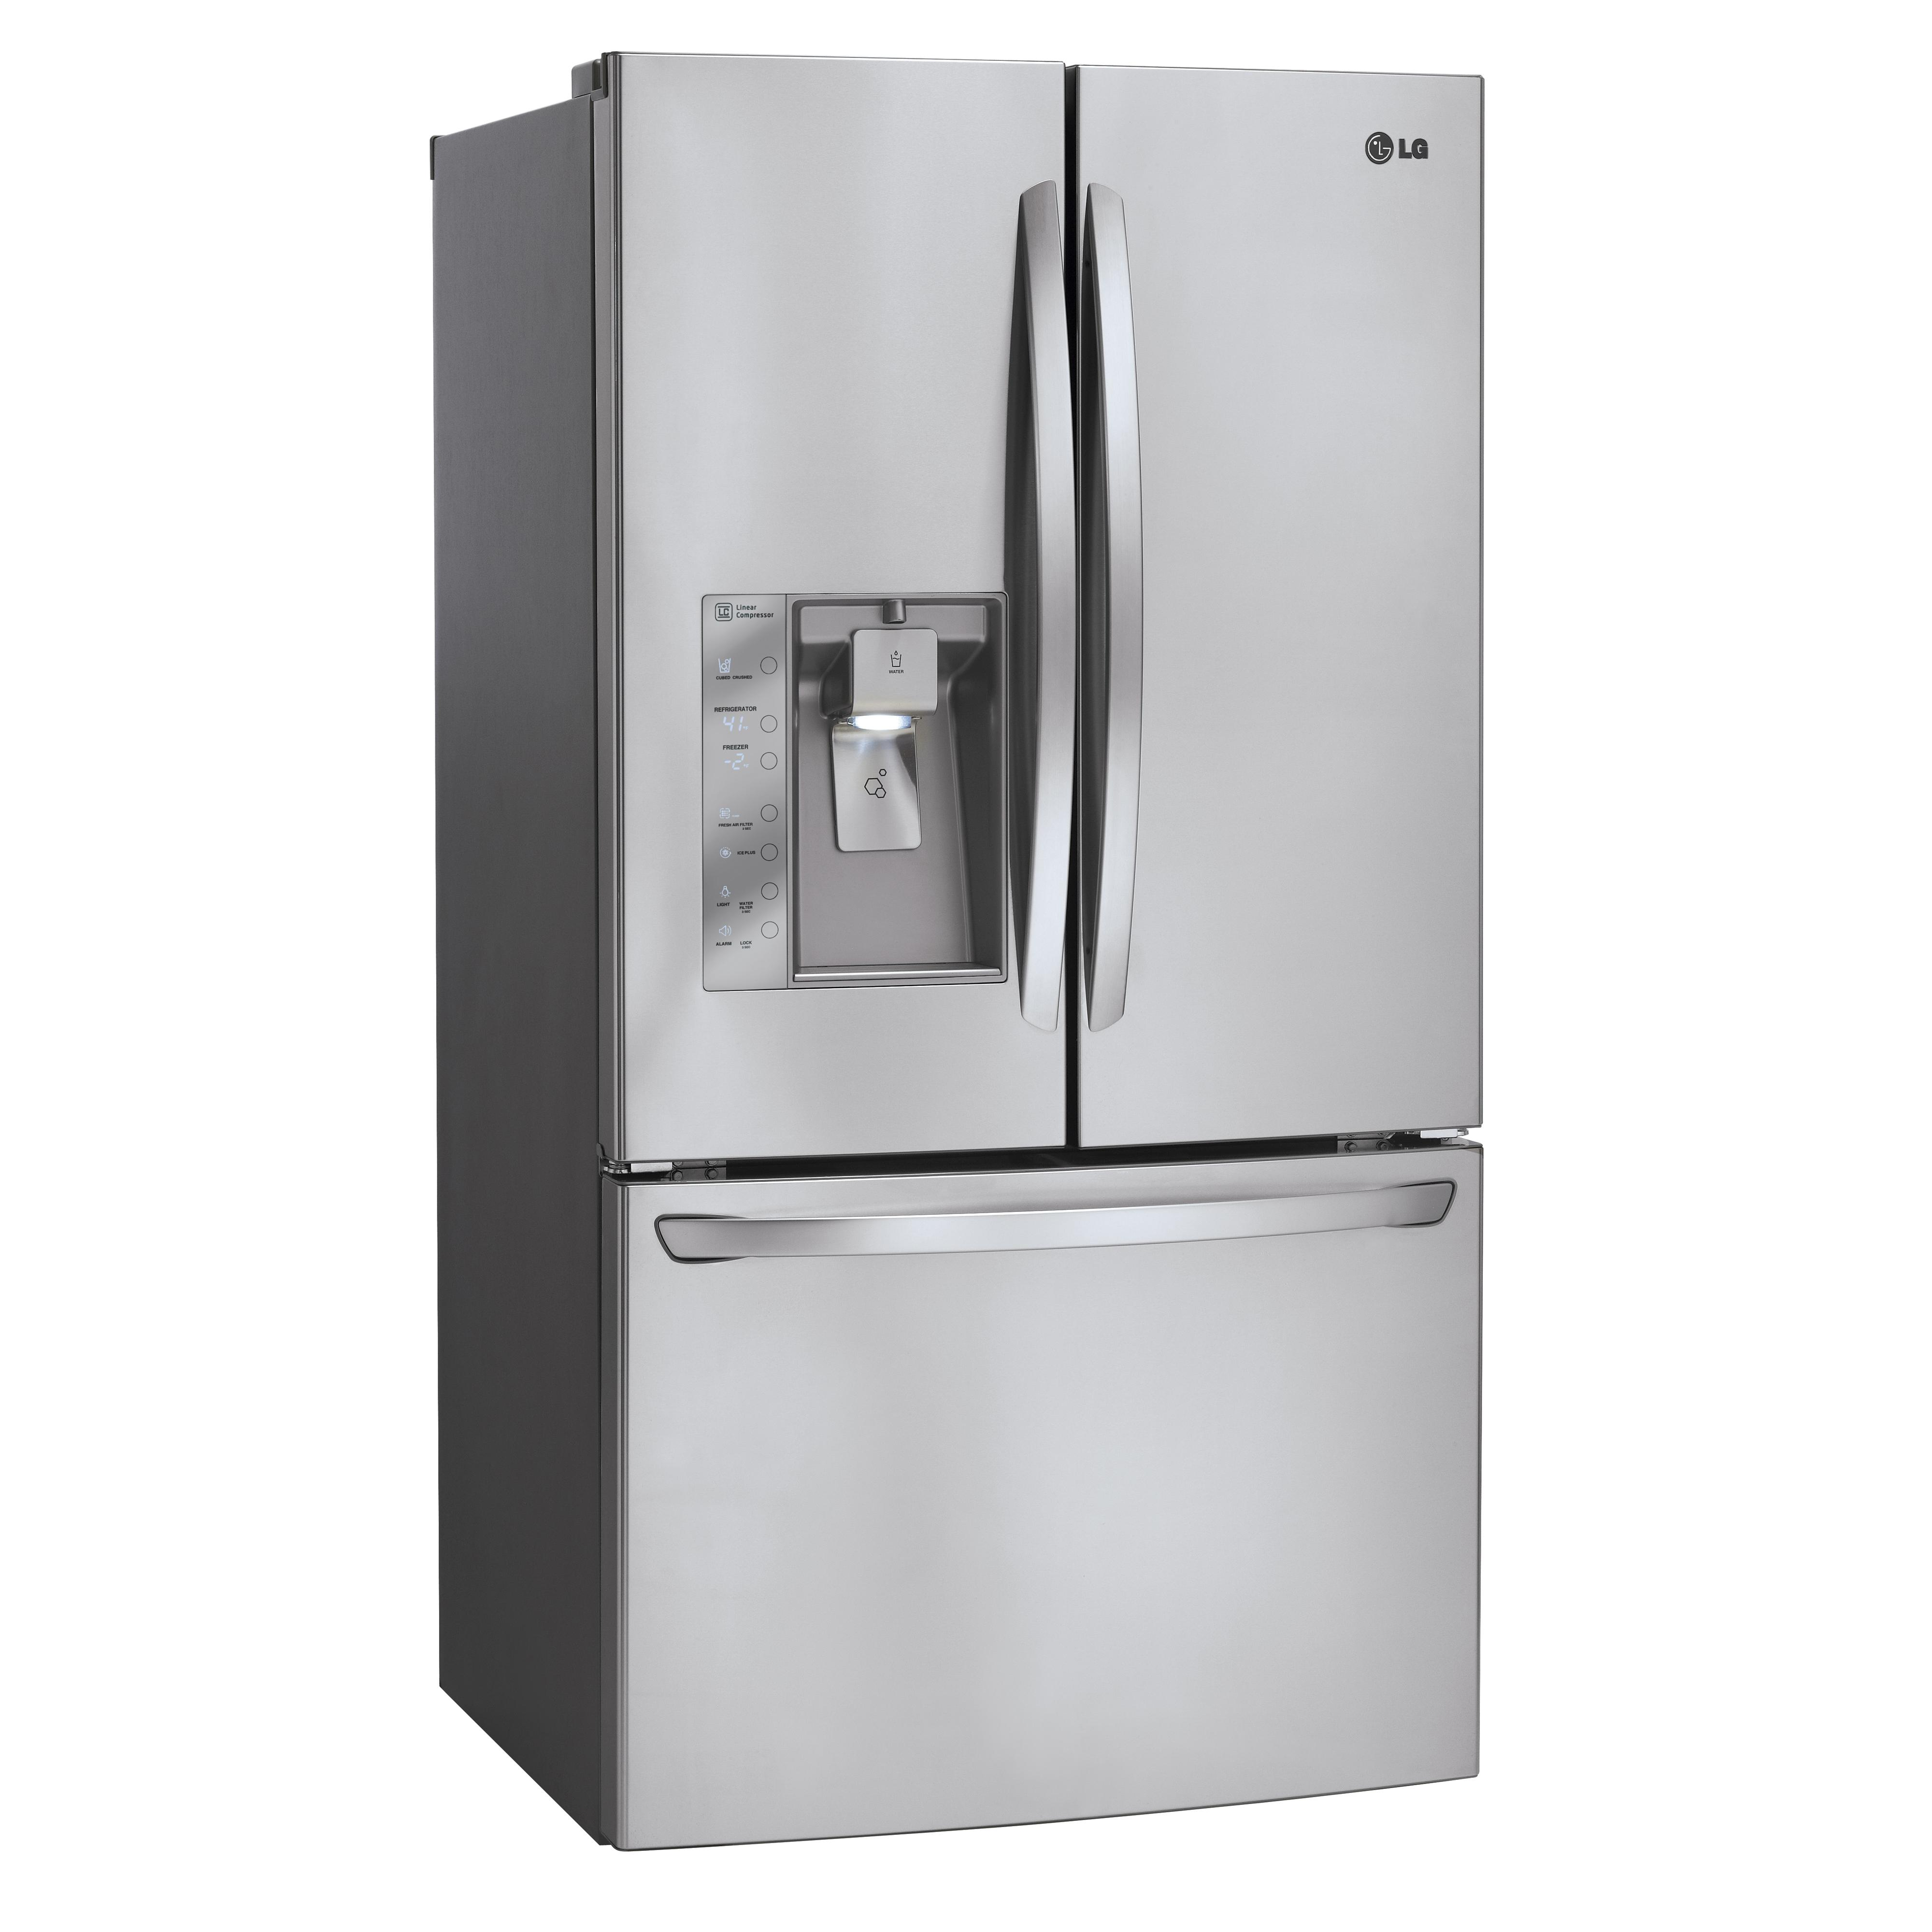 LG Appliances French Door Refrigerators 29 Cu. Ft. 3 Door French Door Fridge - Item Number: LFXS29626S